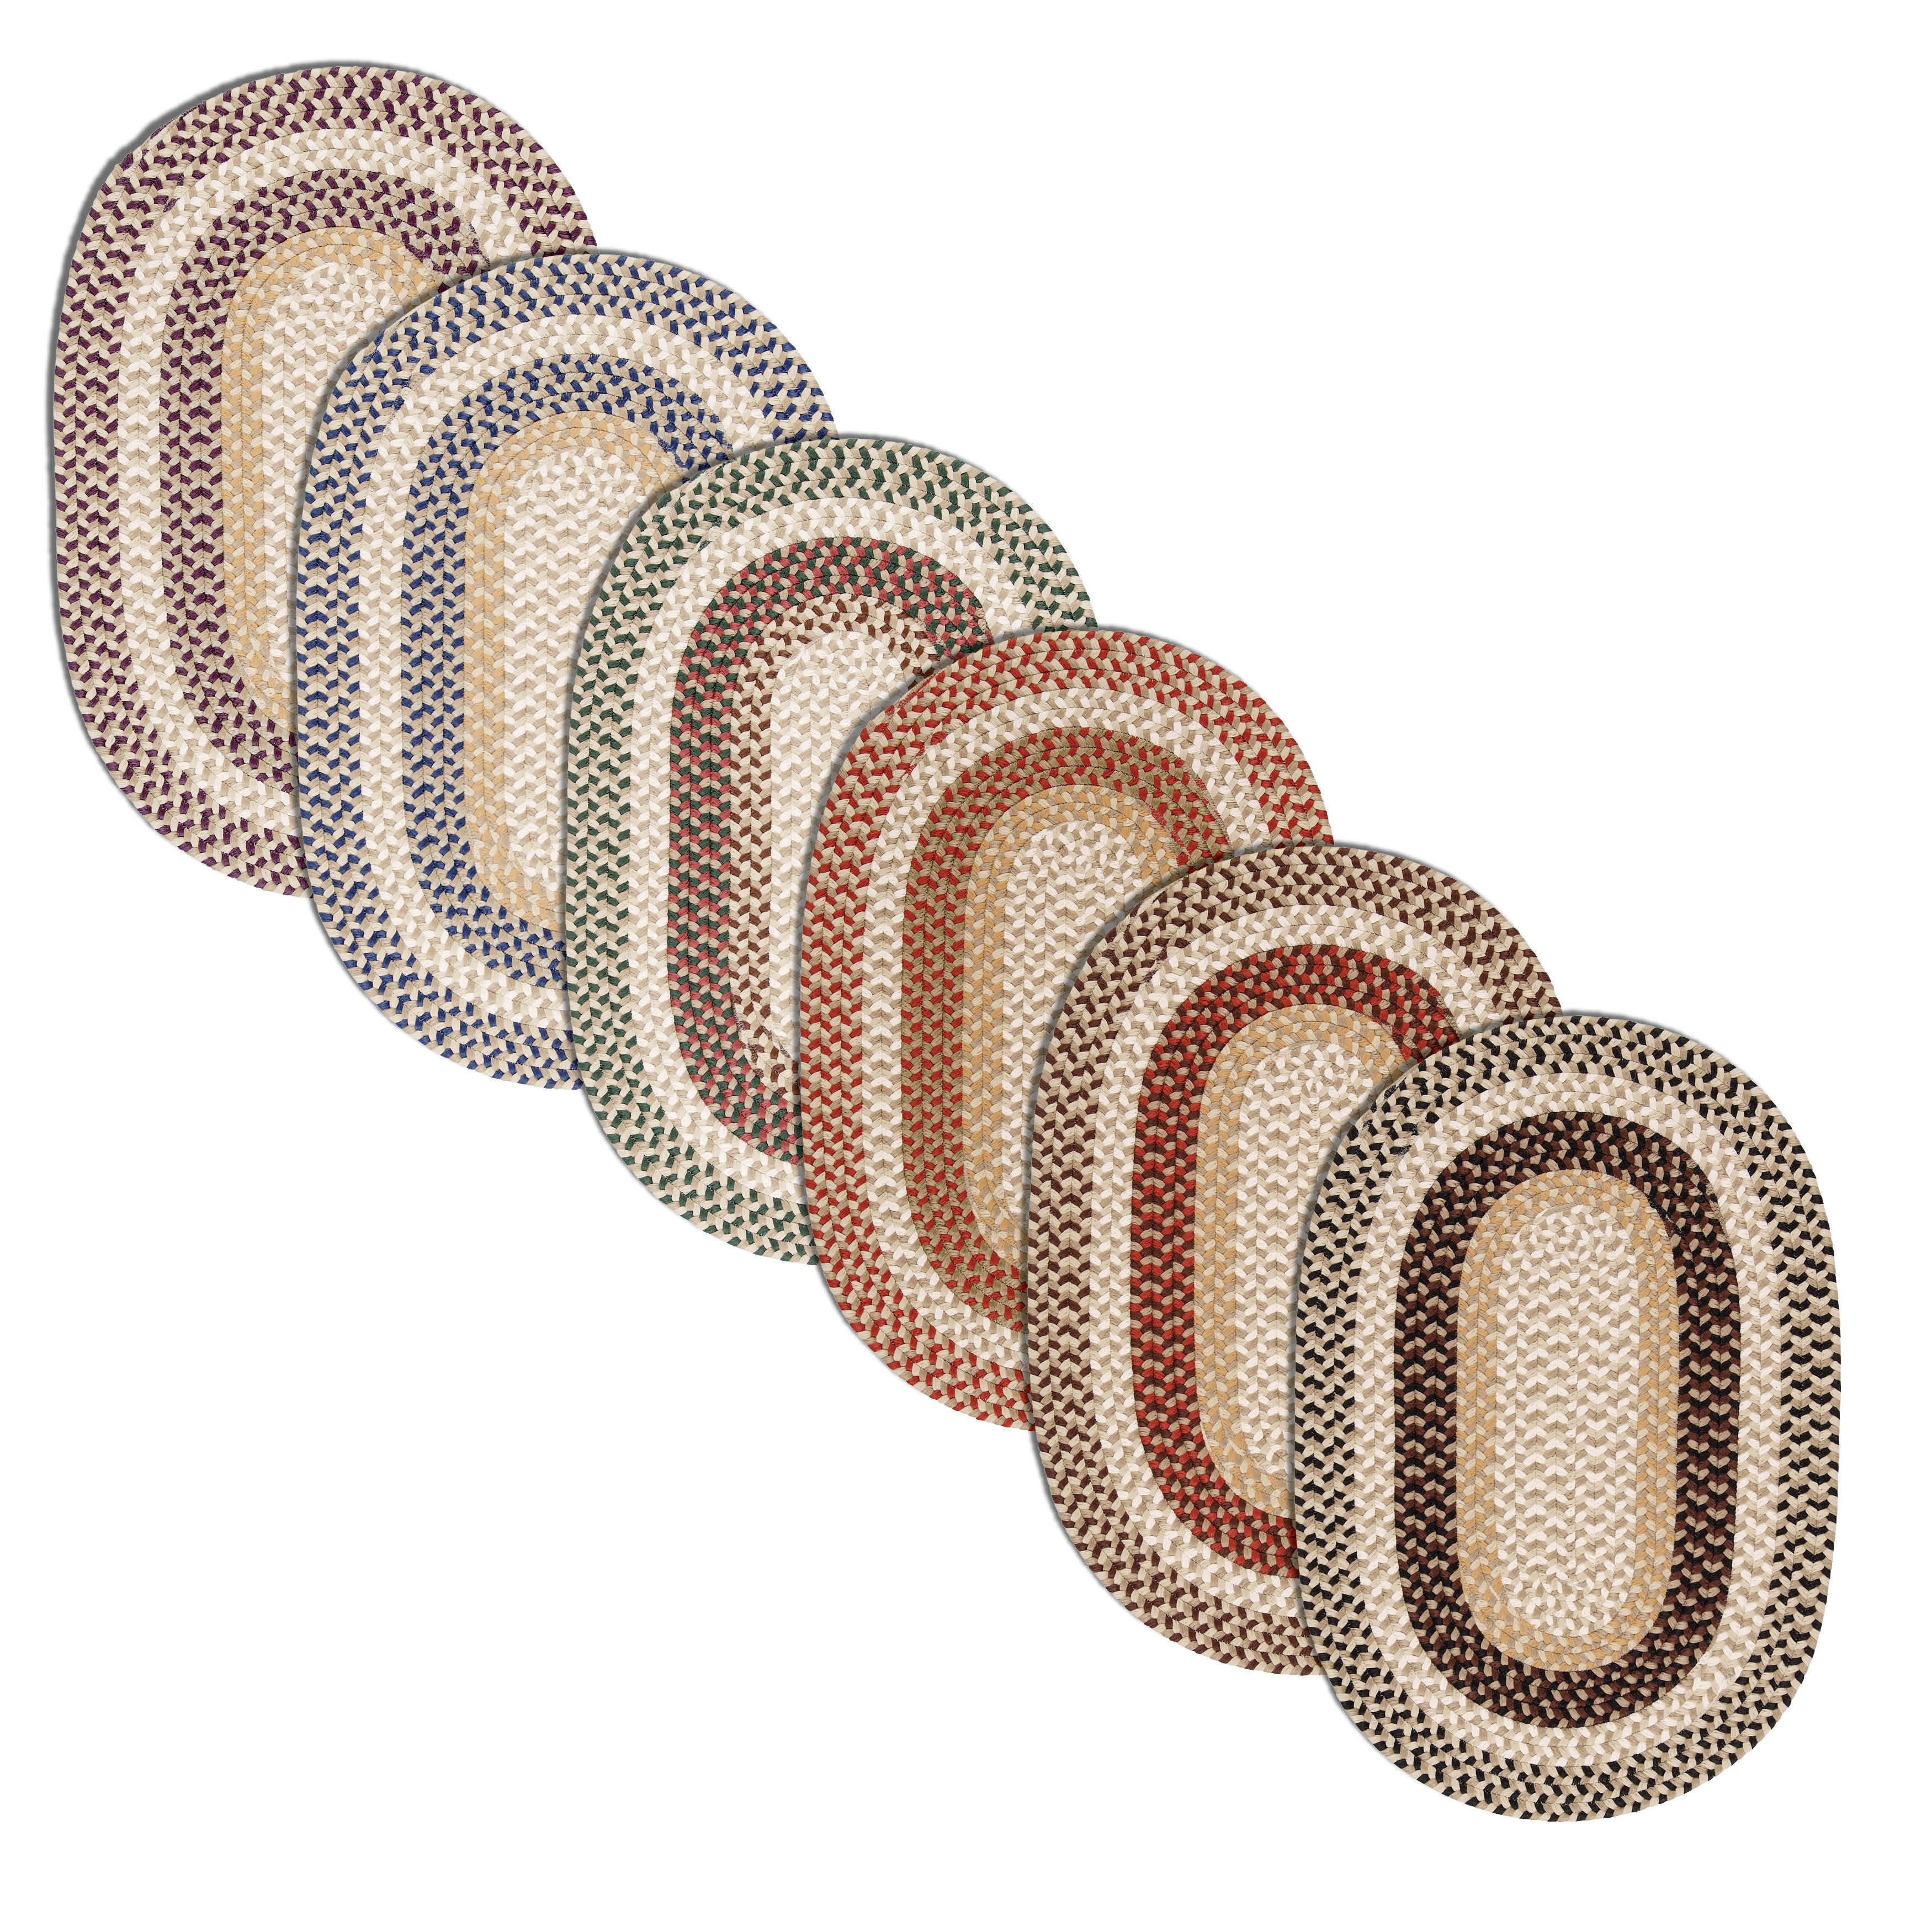 Colonial Mills, Inc. Breckenridge Multicolored Indoor/ Outdoor Braided Rug (8' x 10') at Sears.com